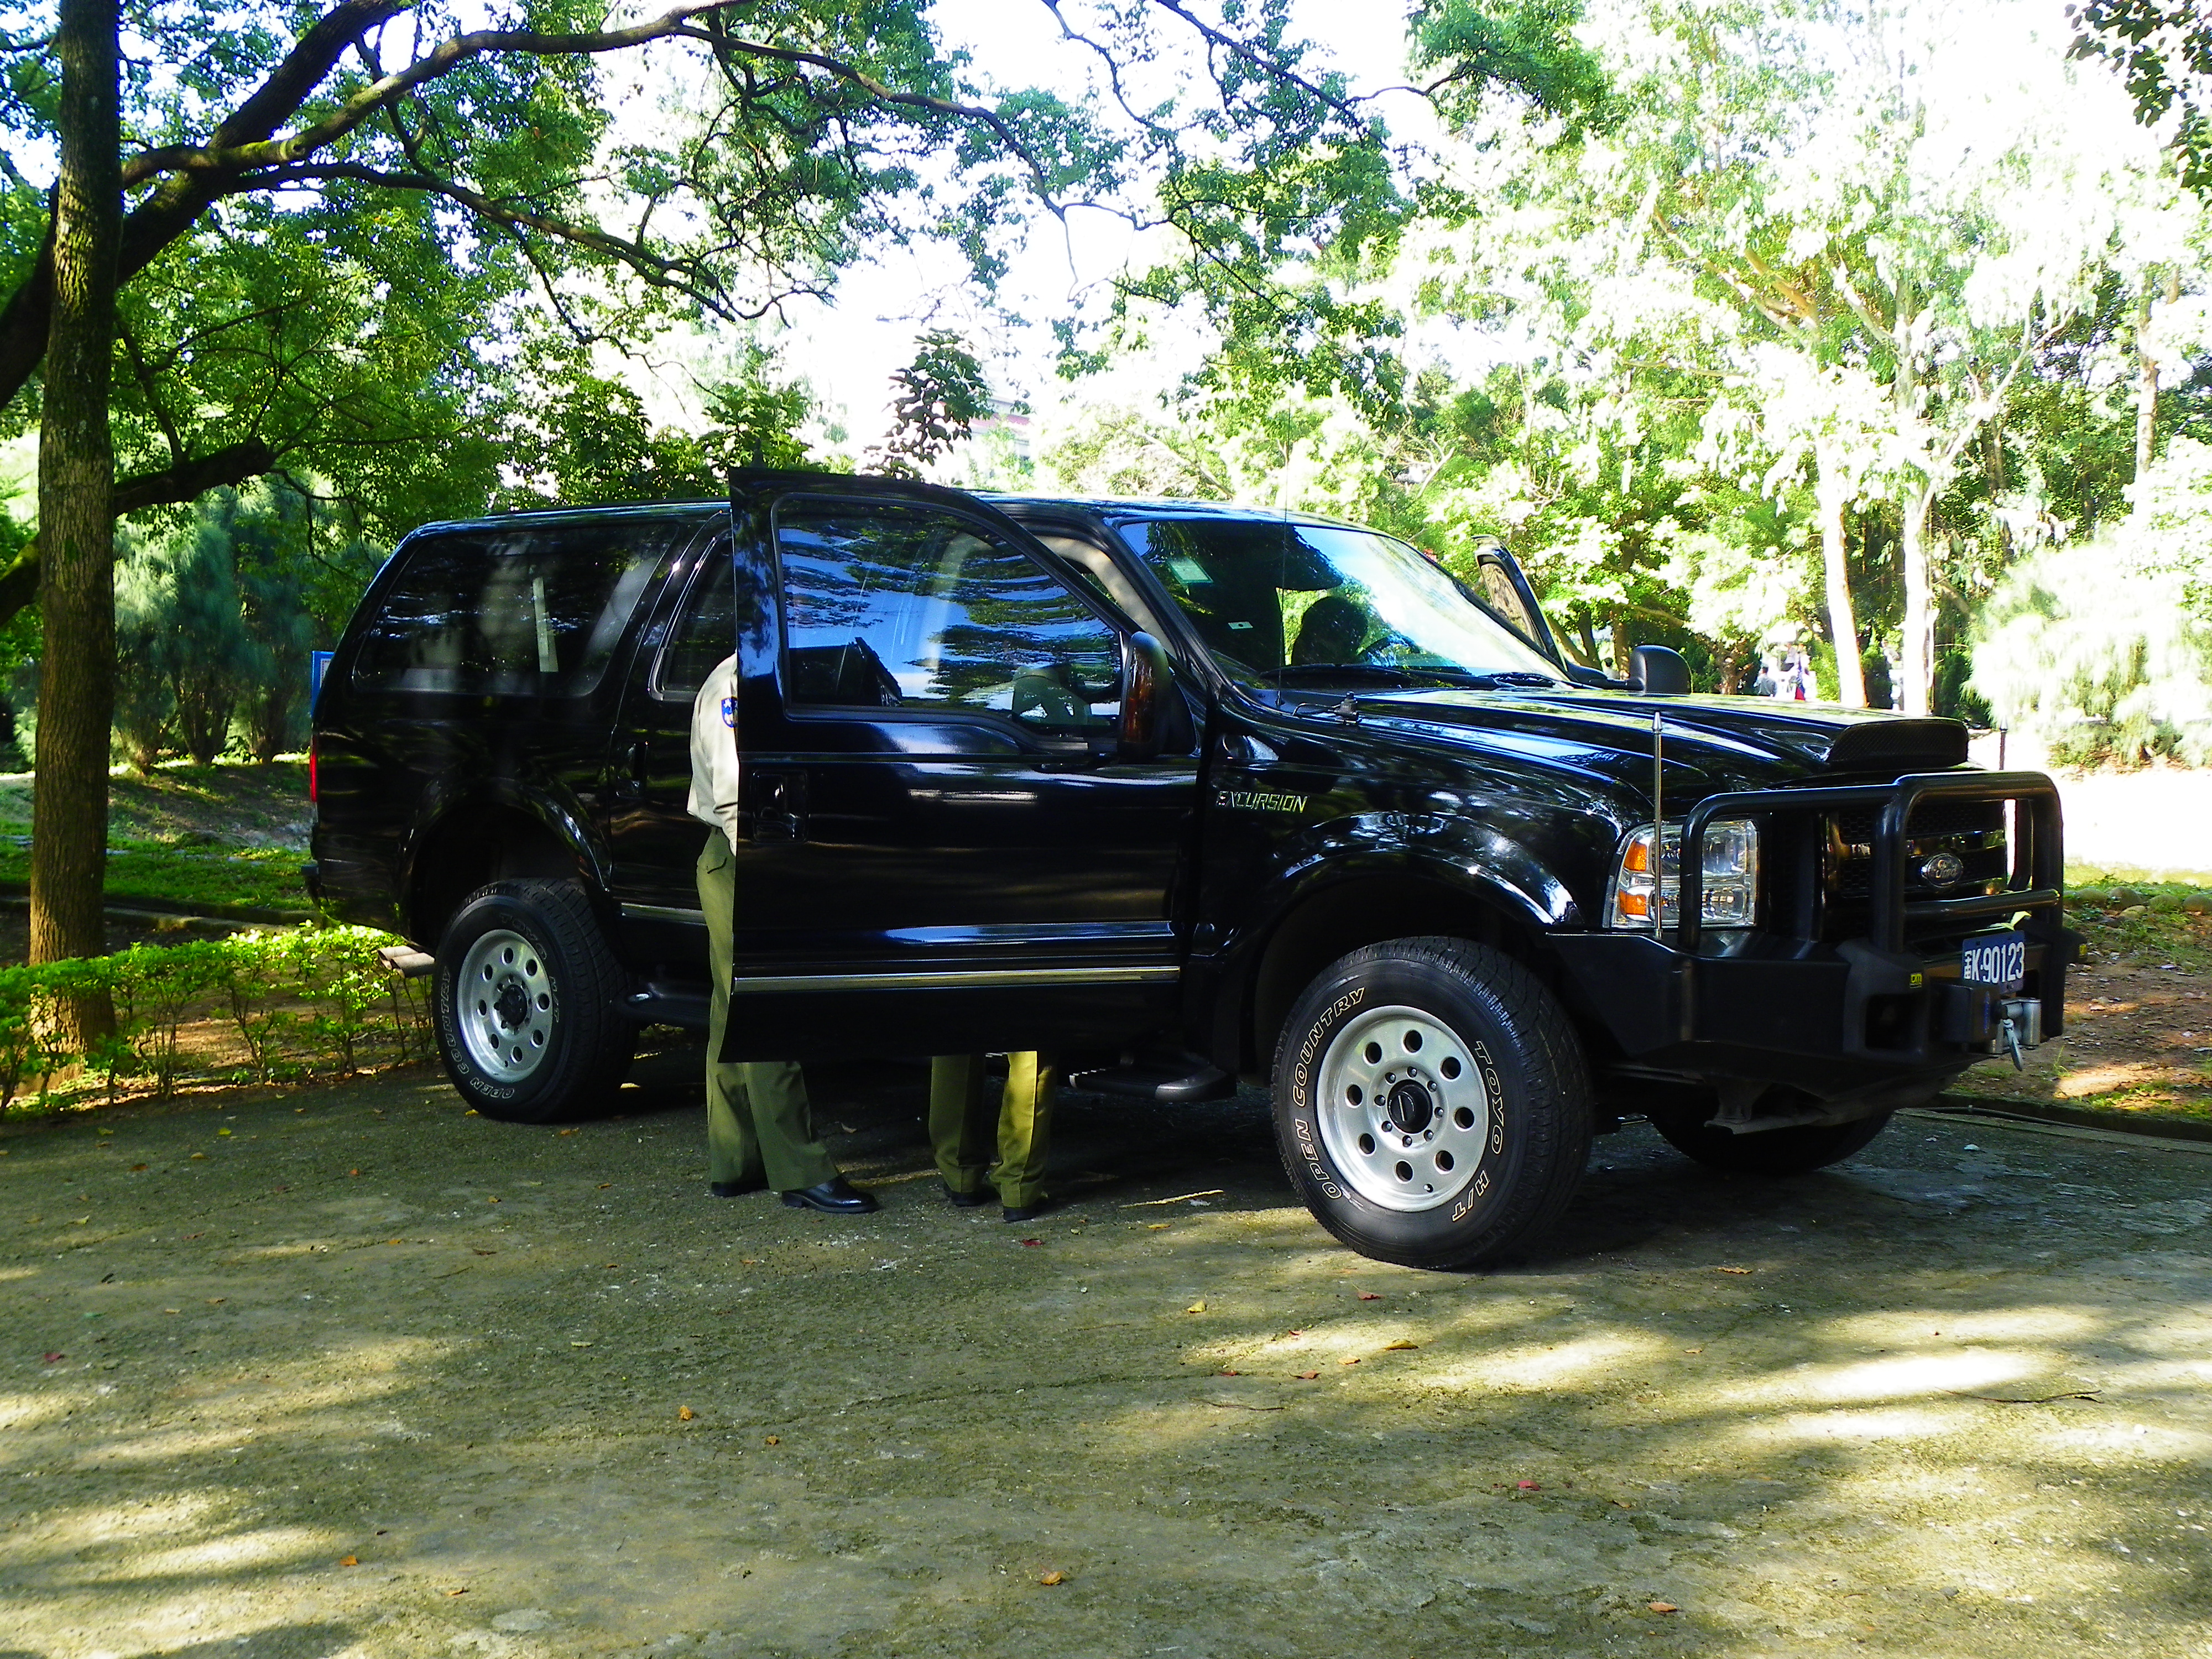 FileFord Excursion limited Armored Car of ROC Military Police in